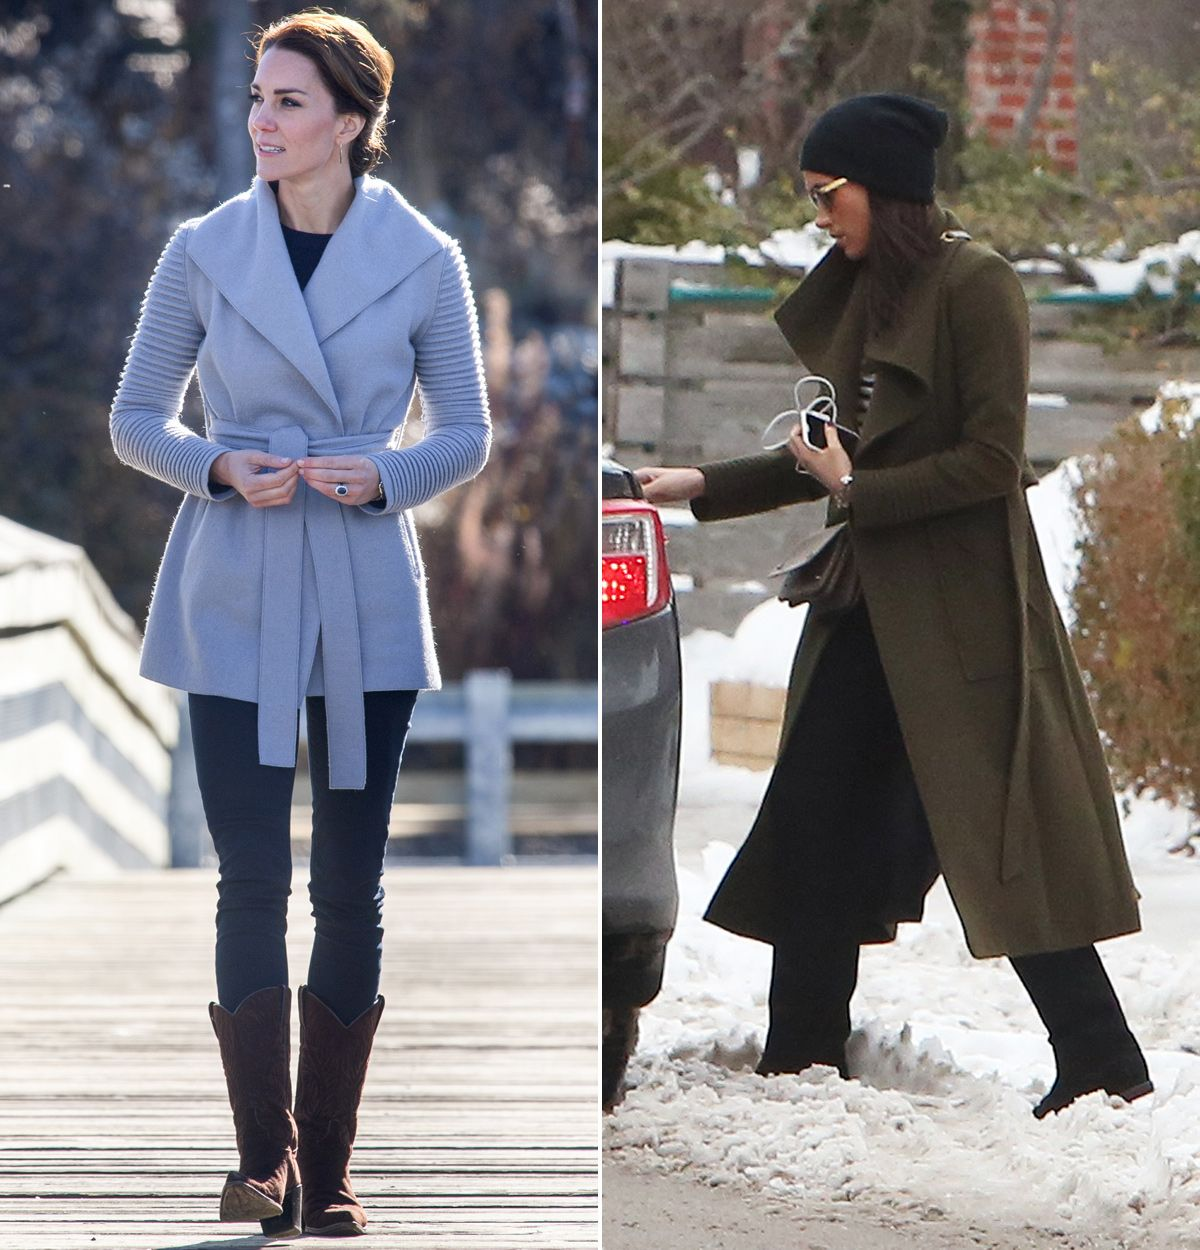 Kate Middleton And Meghan Markle Have The Same Favorite Coat